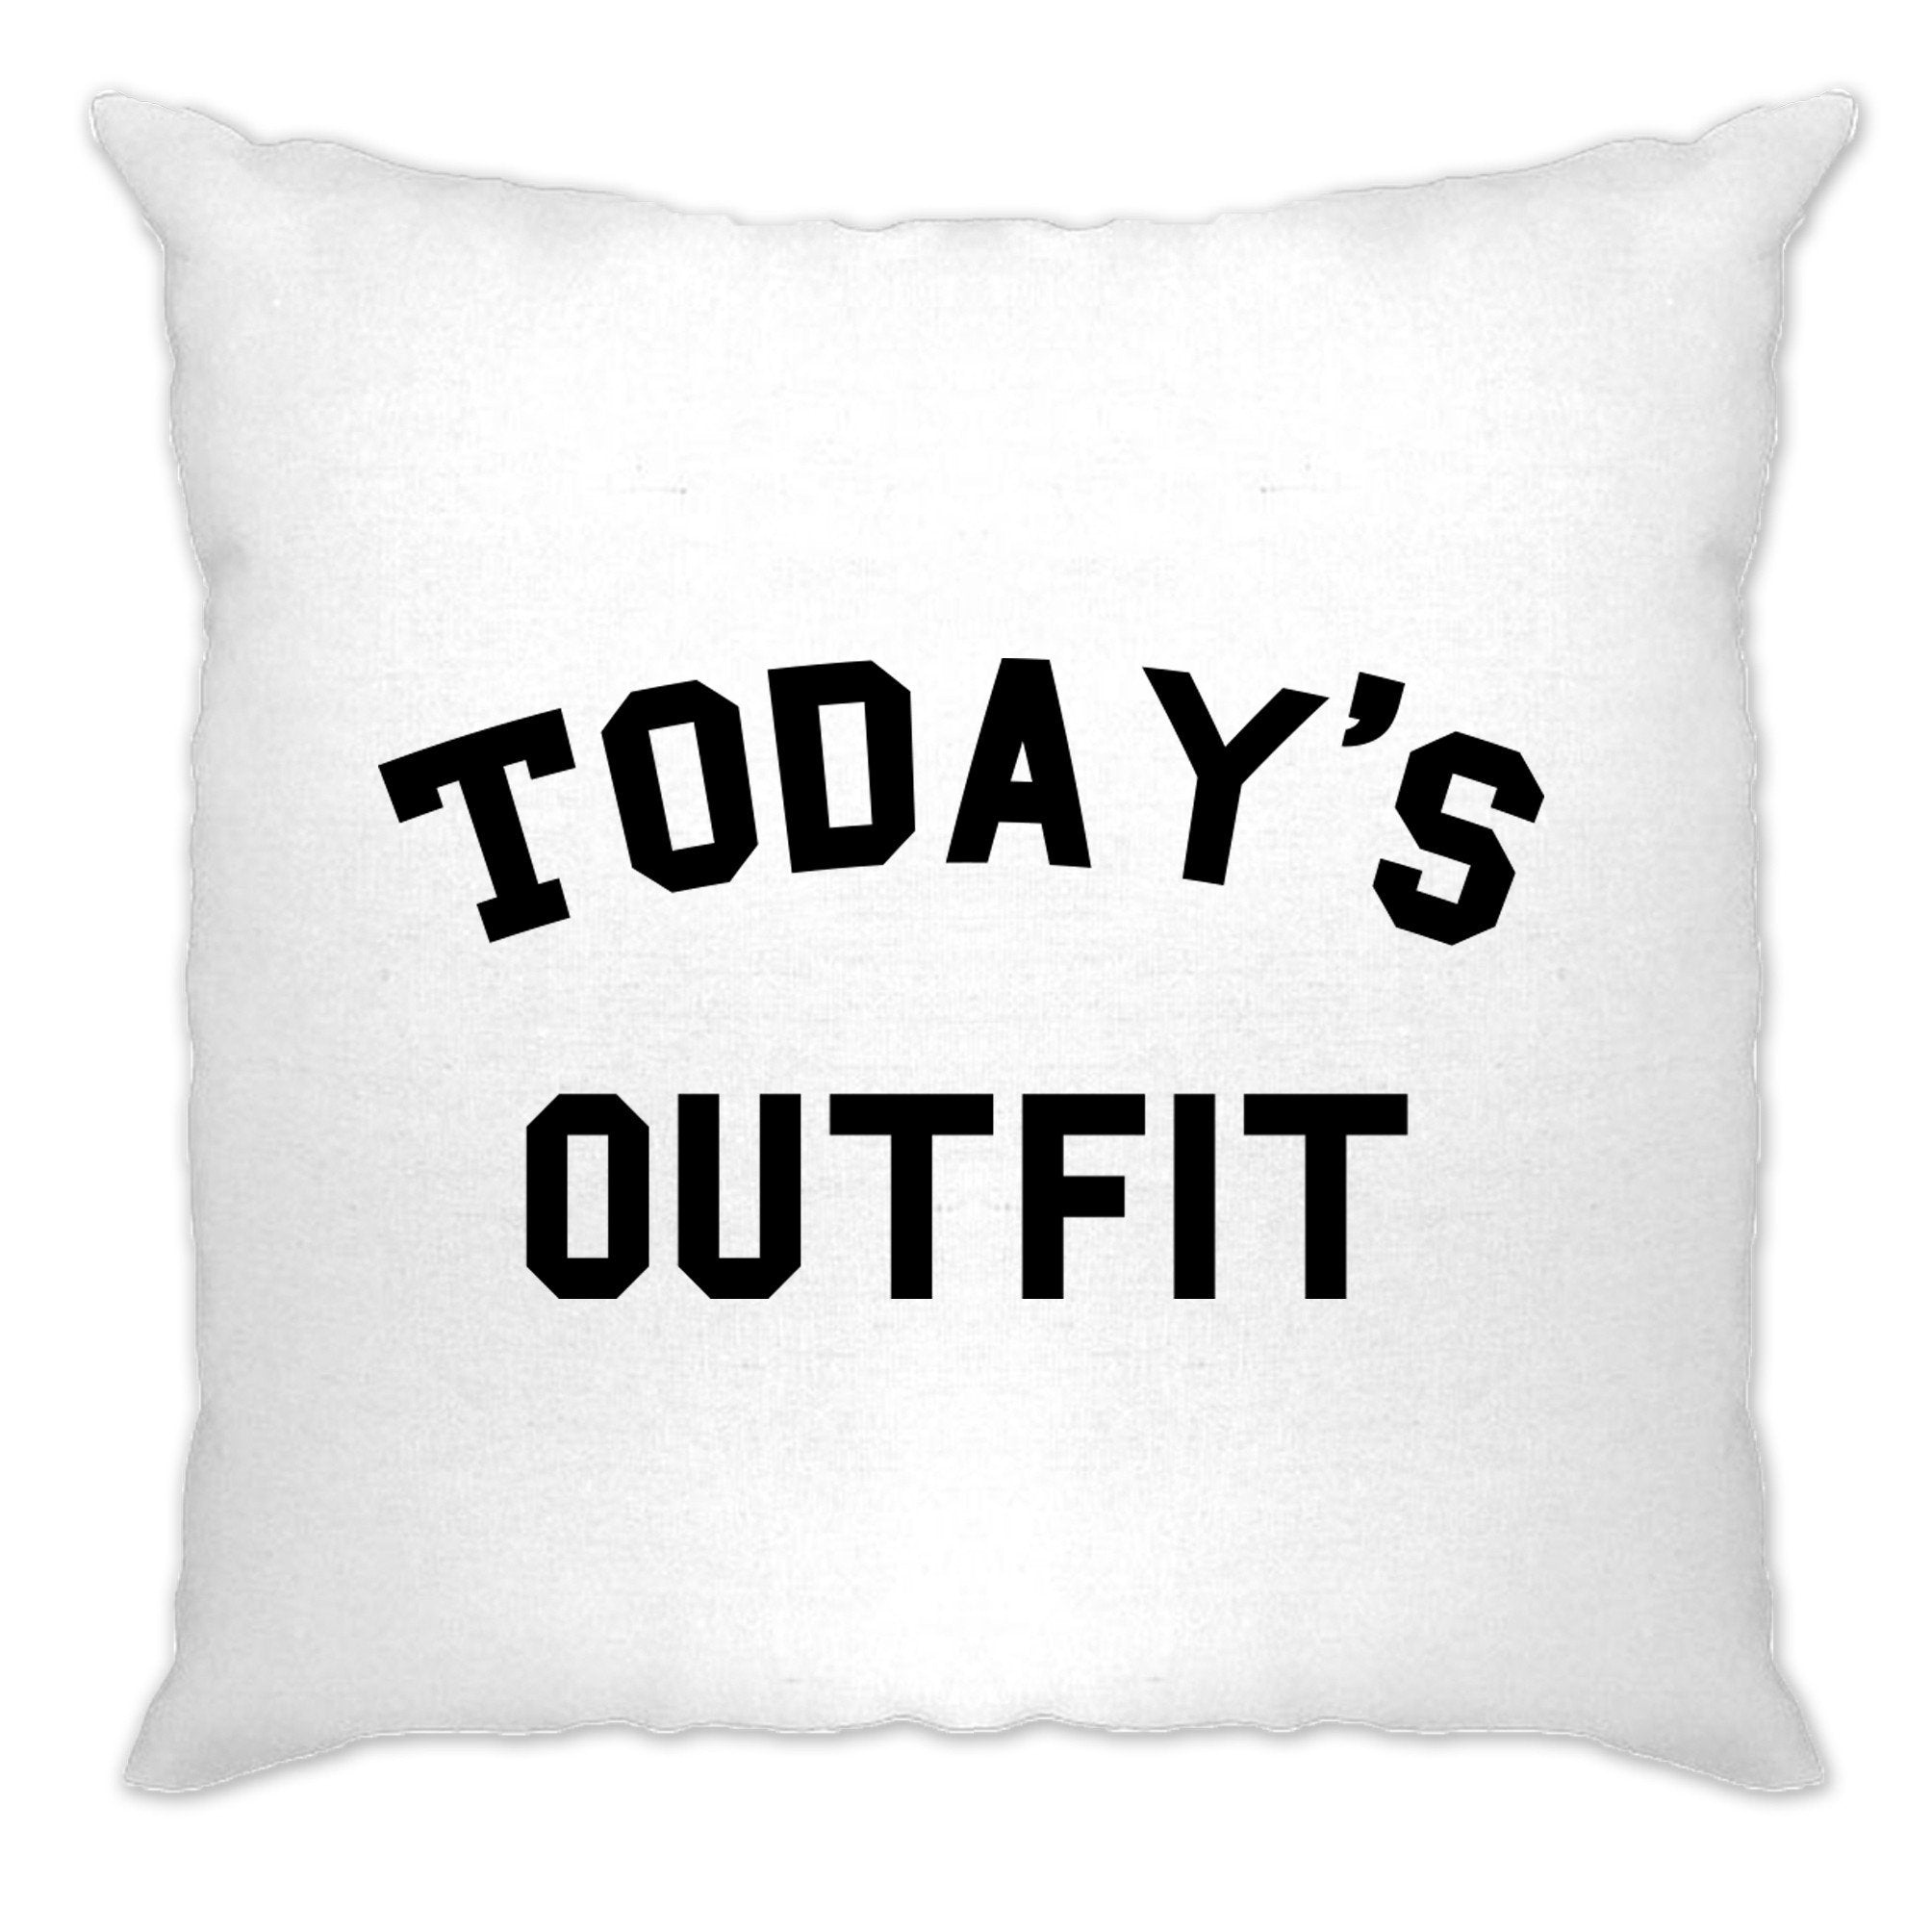 Novelty Slogan Cushion Cover This Is Today's Outfit